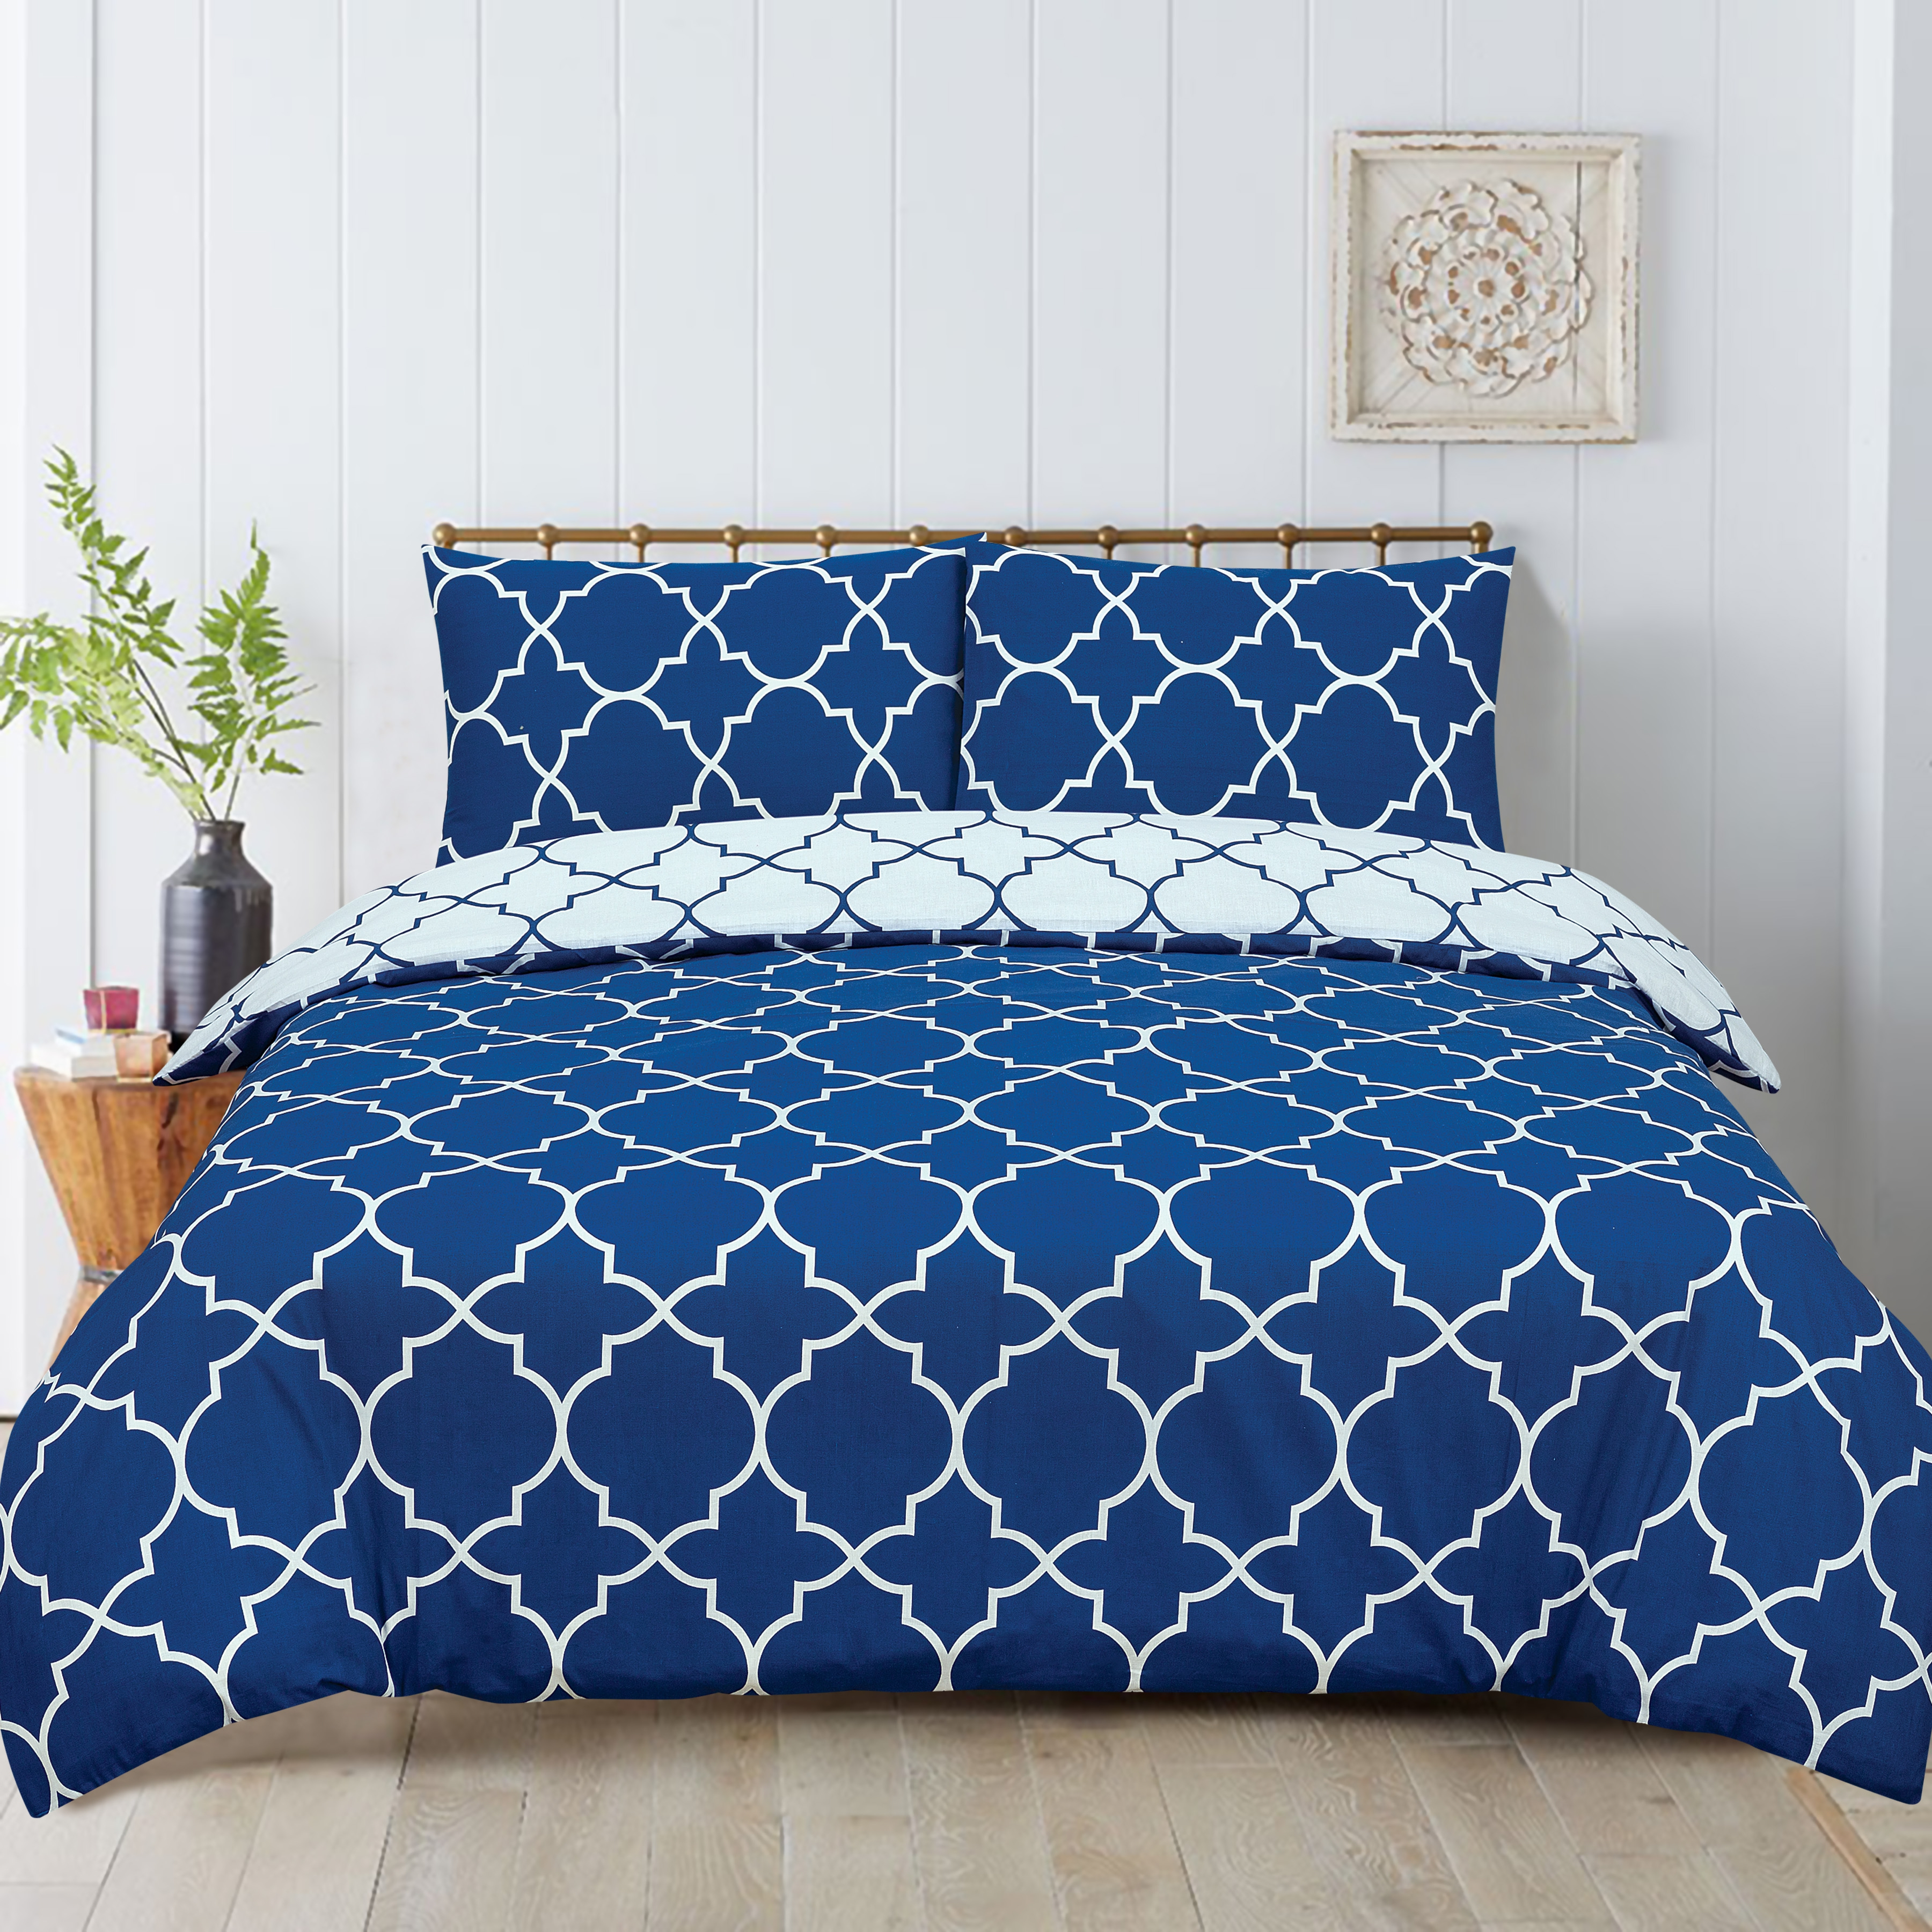 Morrocan Blue Reversible Rotary Double Bed Duvet Quilt Cover Set